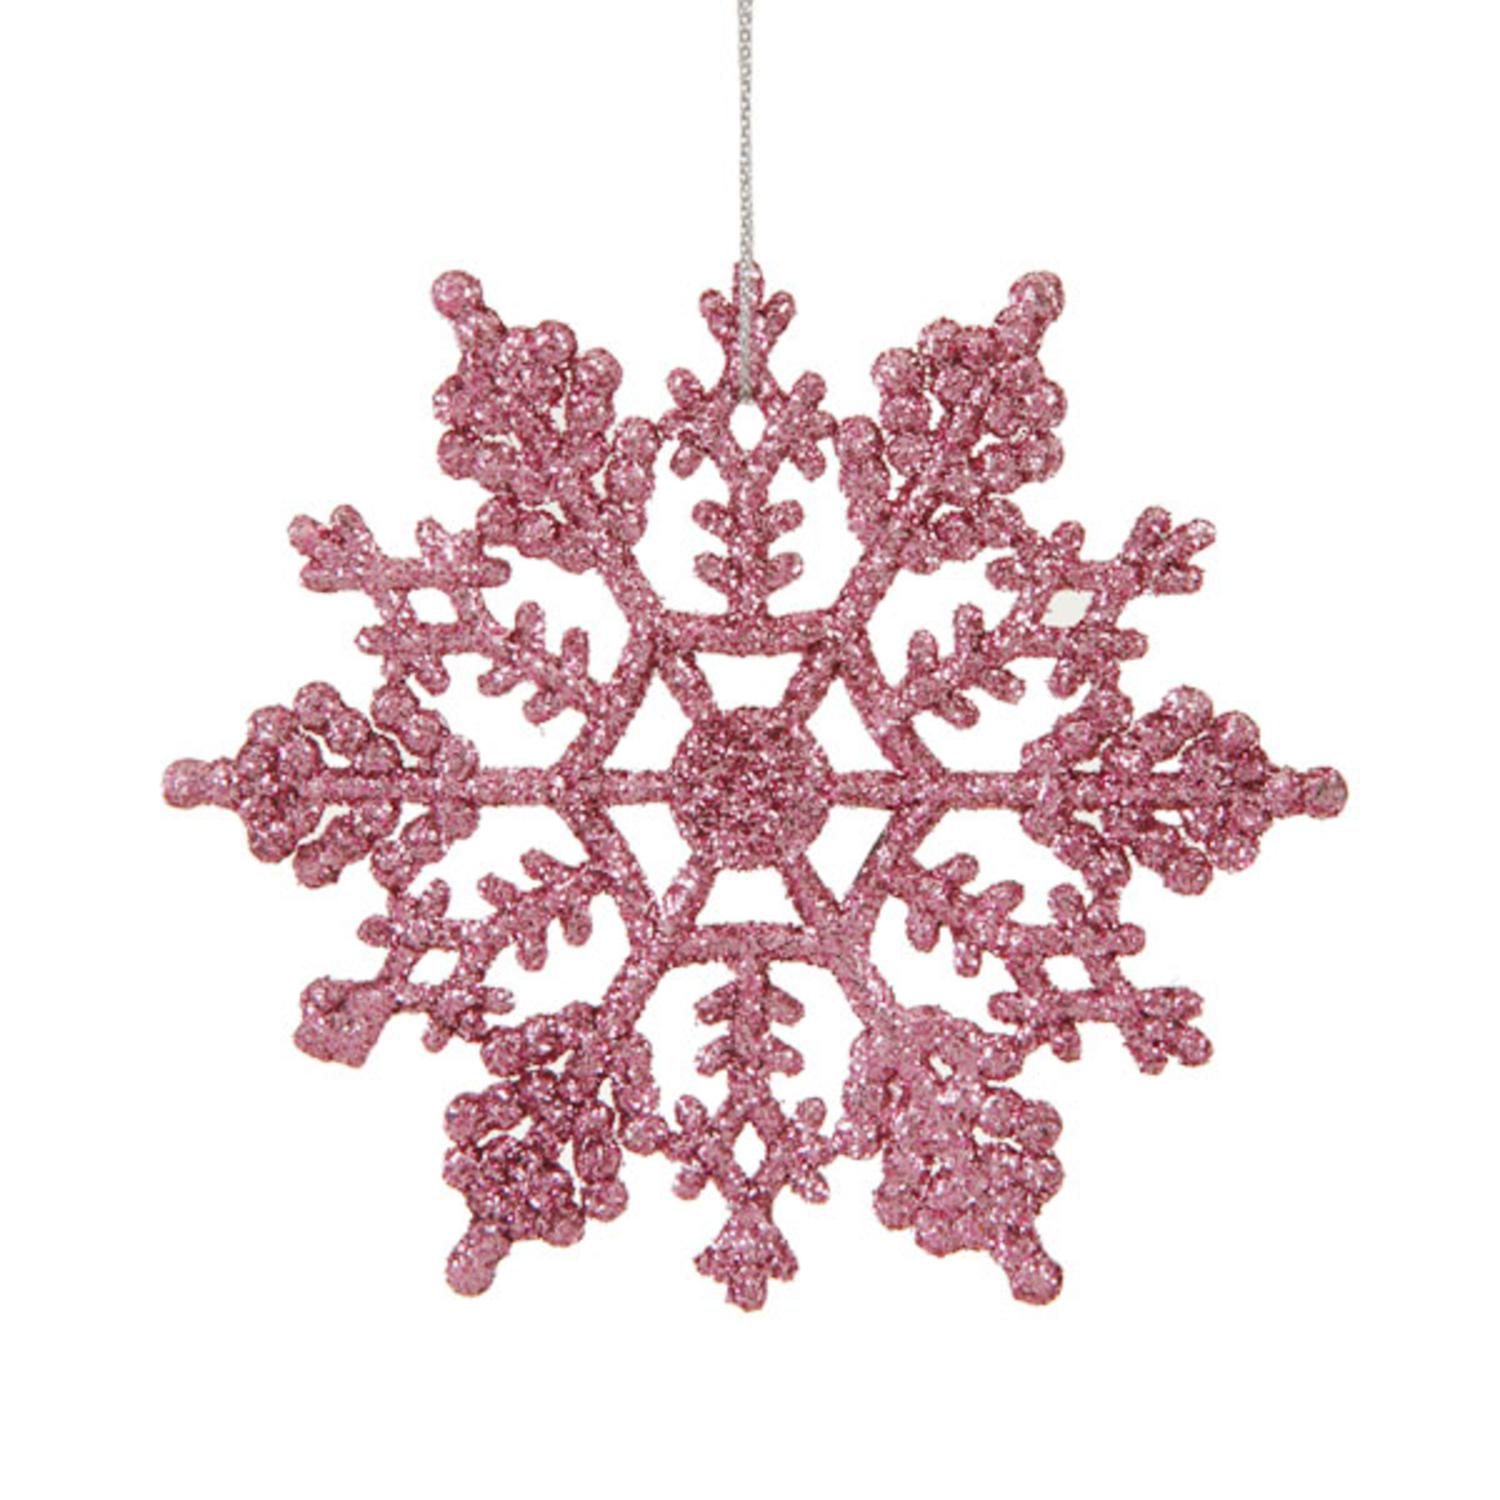 Club pack of 24 mauve pink glitter snowflake christmas ornaments 4 club pack of 24 mauve pink glitter snowflake christmas ornaments 4 walmart arubaitofo Gallery